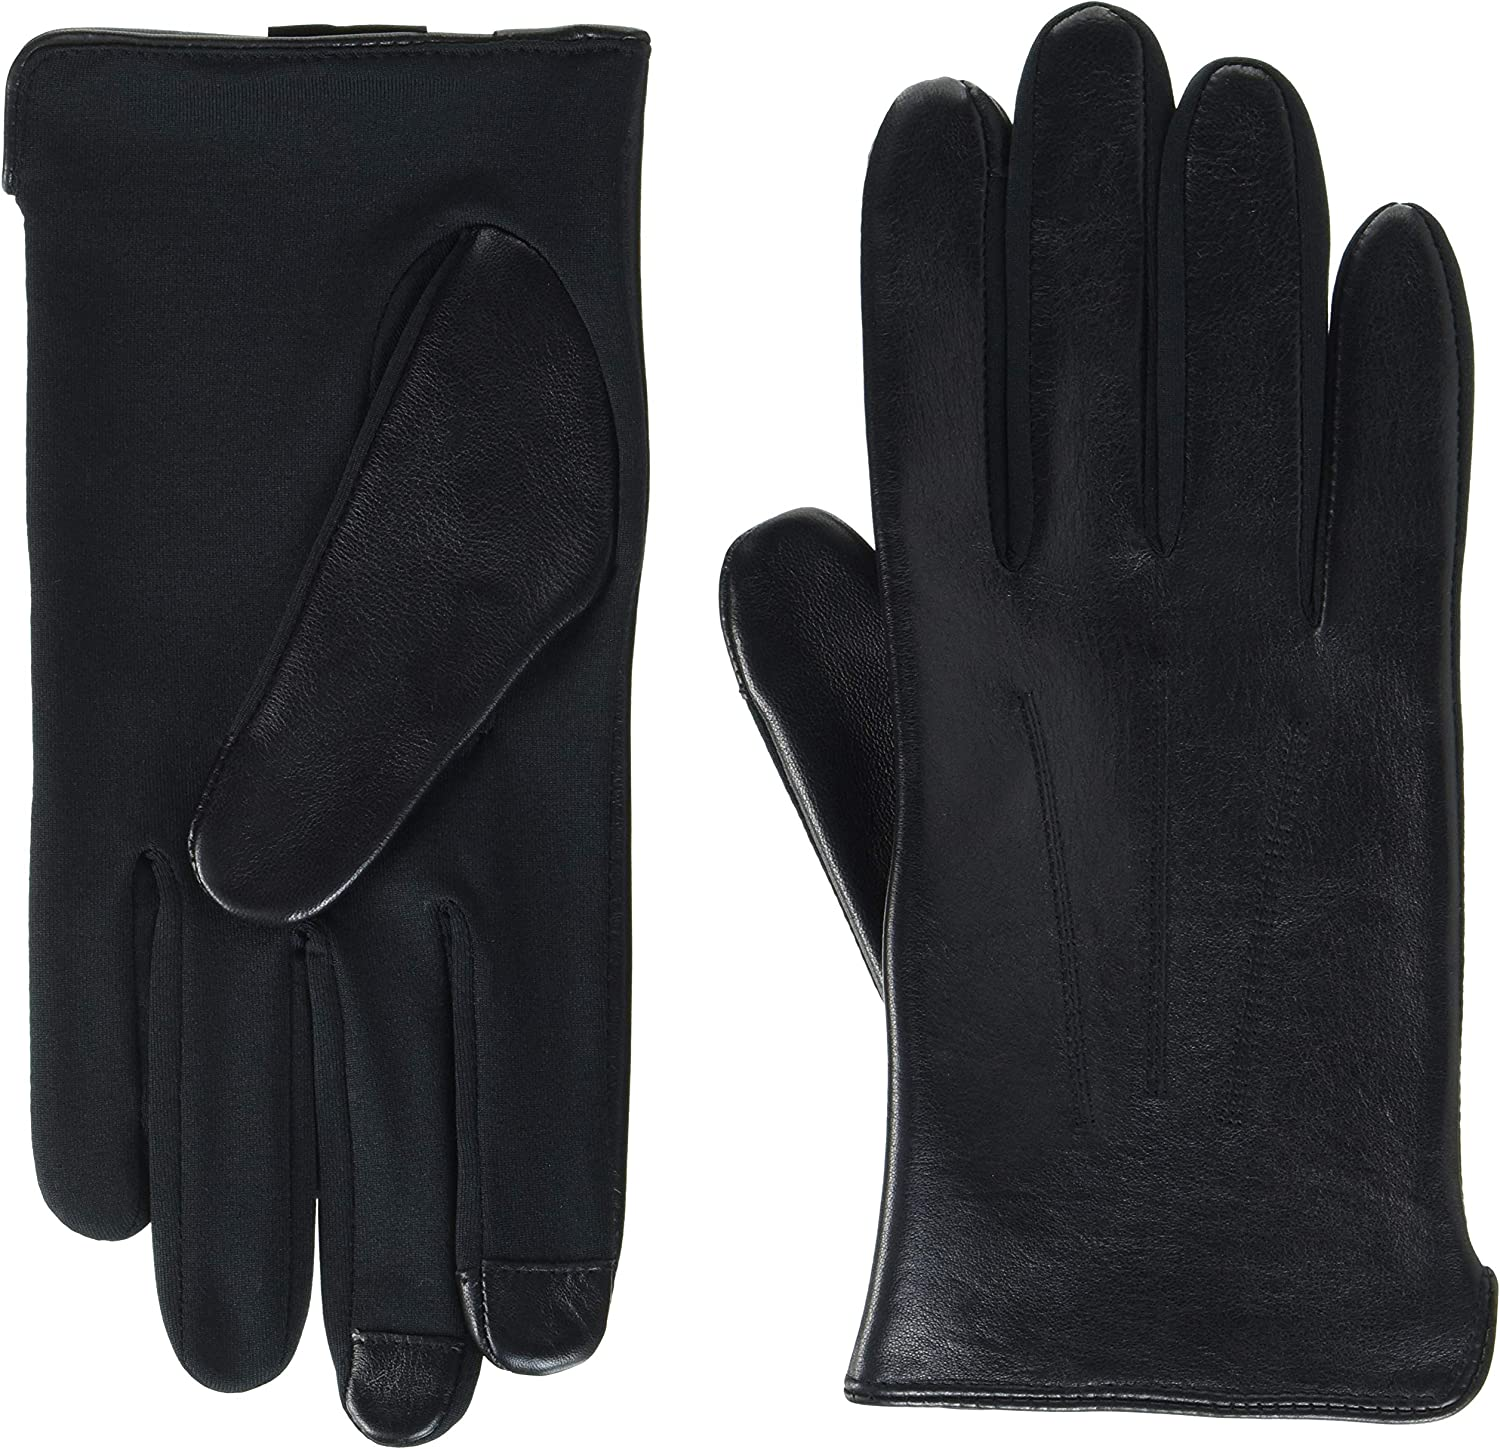 Miles, Urban Touchscreen Glove for Women by KESSLER, Upper Hand Made of Lamb Nappa